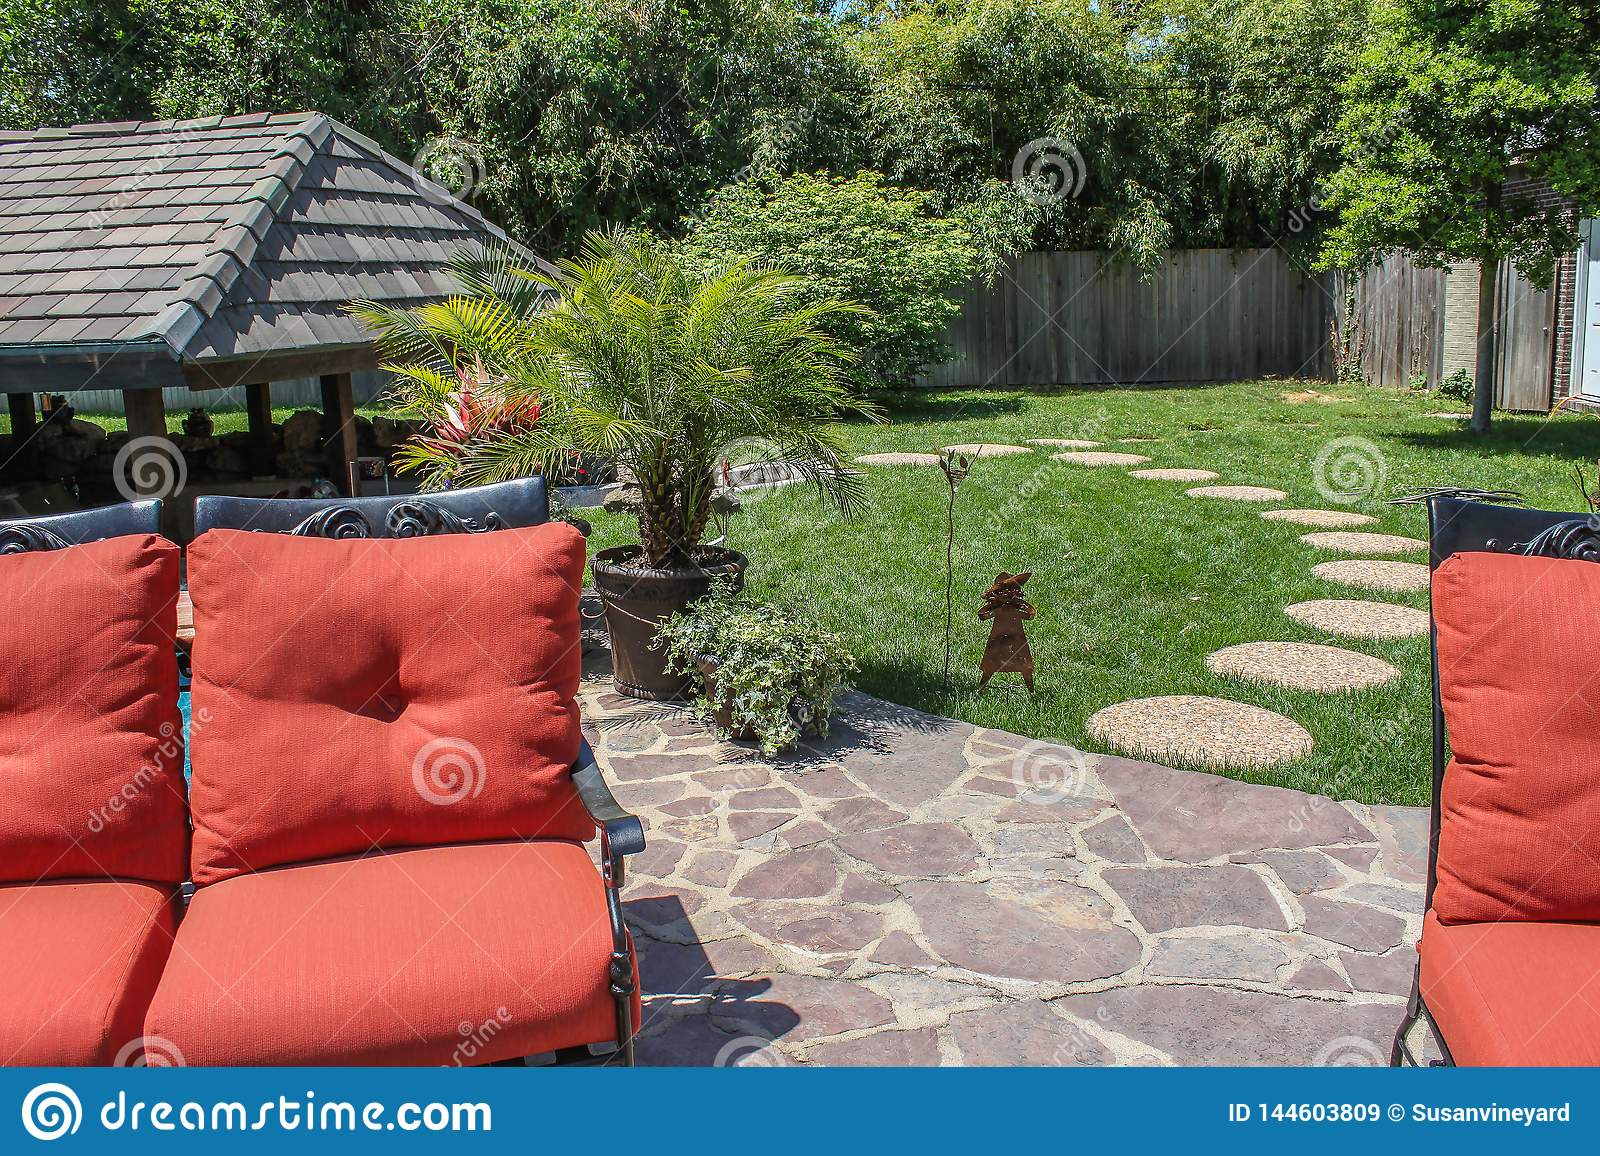 https www dreamstime com backyard garden patio stepping stones to covered outdoor living area orange cushioned lawn furniture foreground wooden image144603809